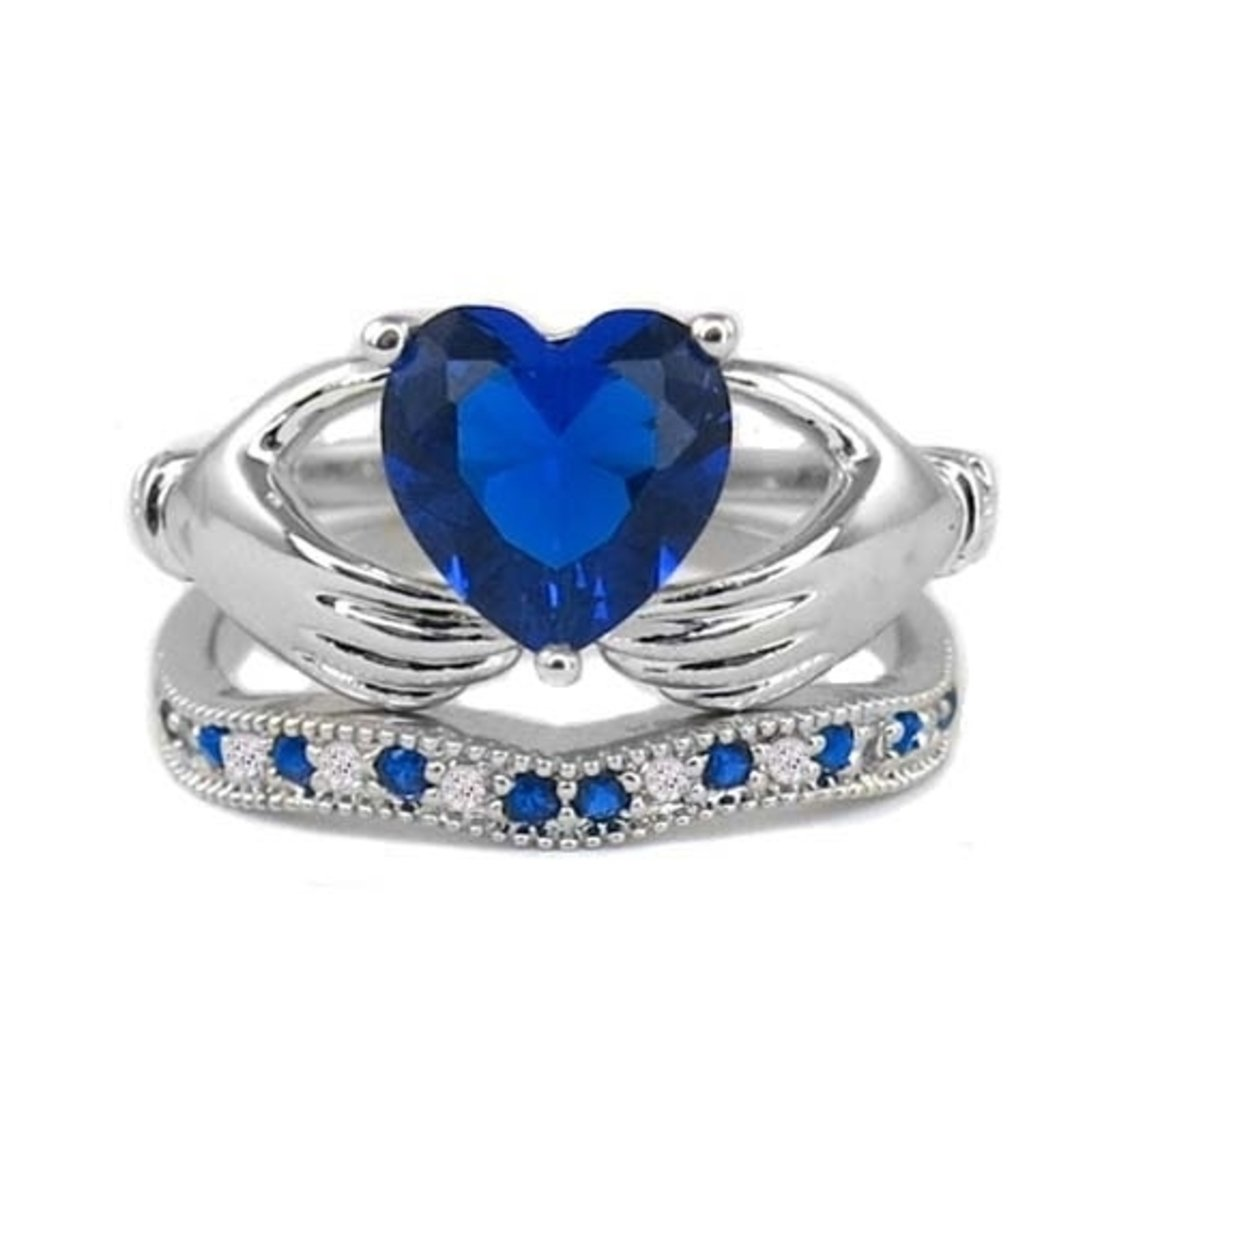 3.50cttw Sapphire Heart Cut Claddagh Ring And Band Set 6